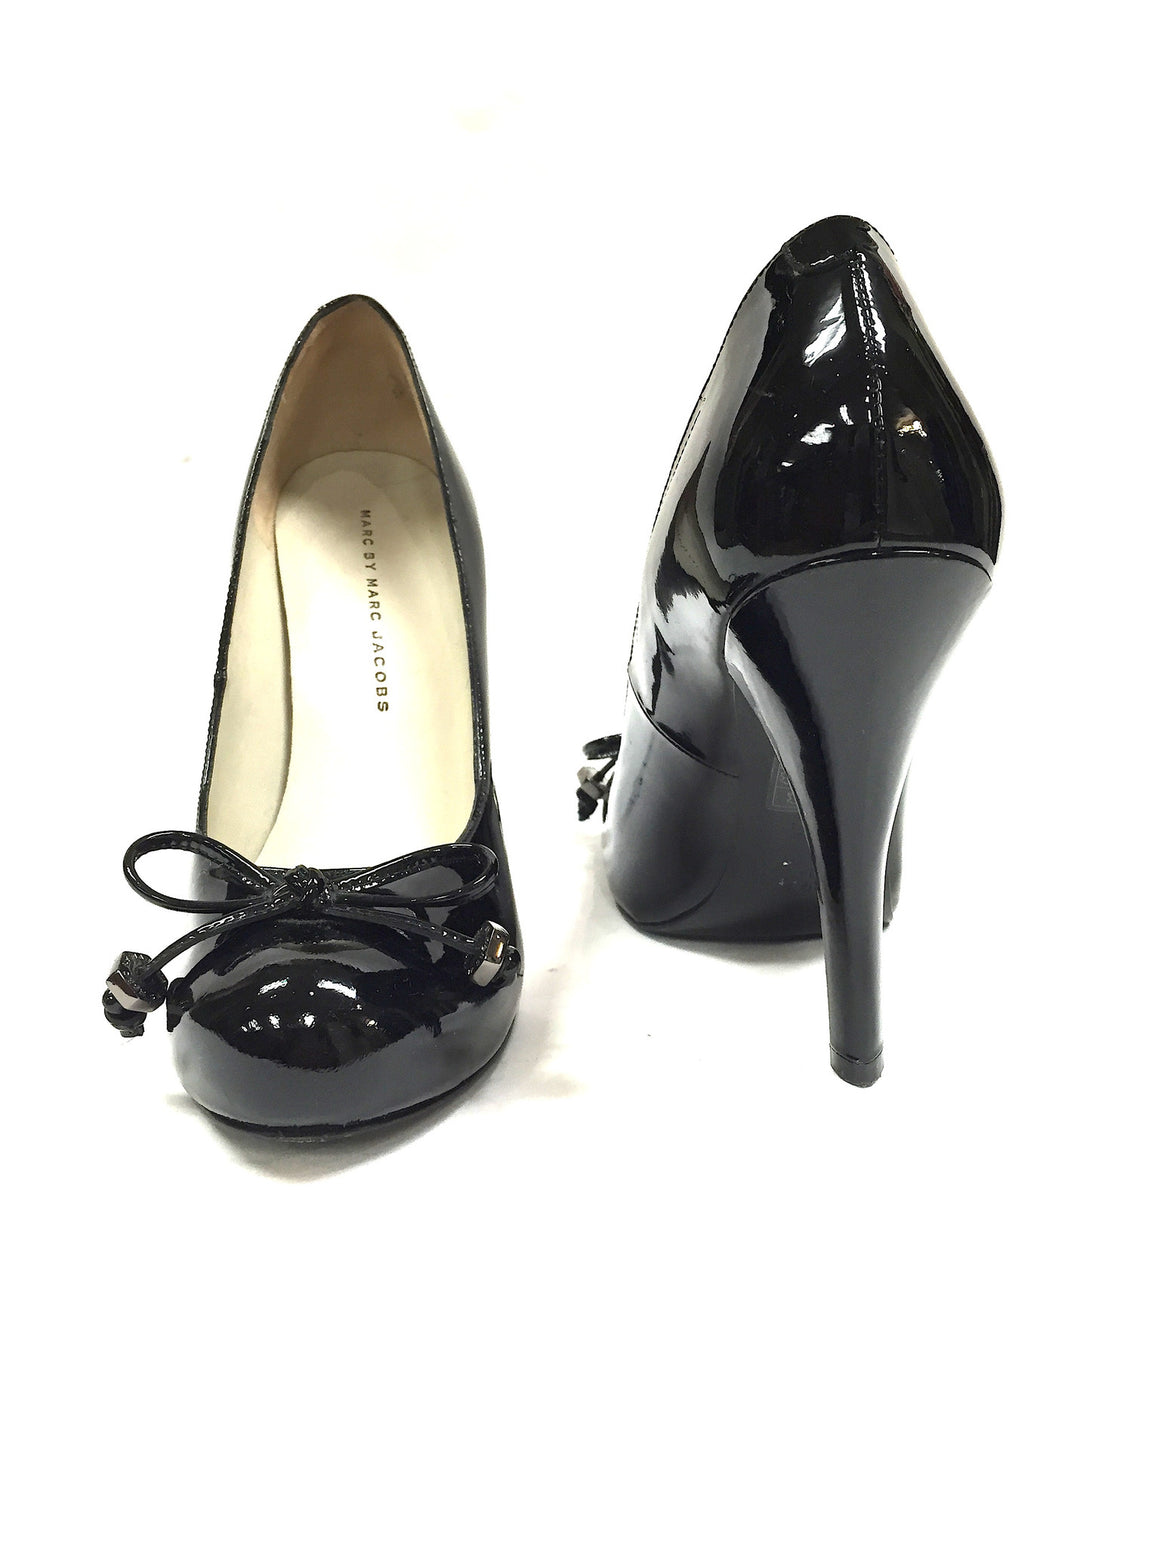 bisbiz.com MARC by MARC JACOBS   Black Patent Leather Platform Ballet  Heel Pumps  Size: 37.5/7.5 - Bis Luxury Resale